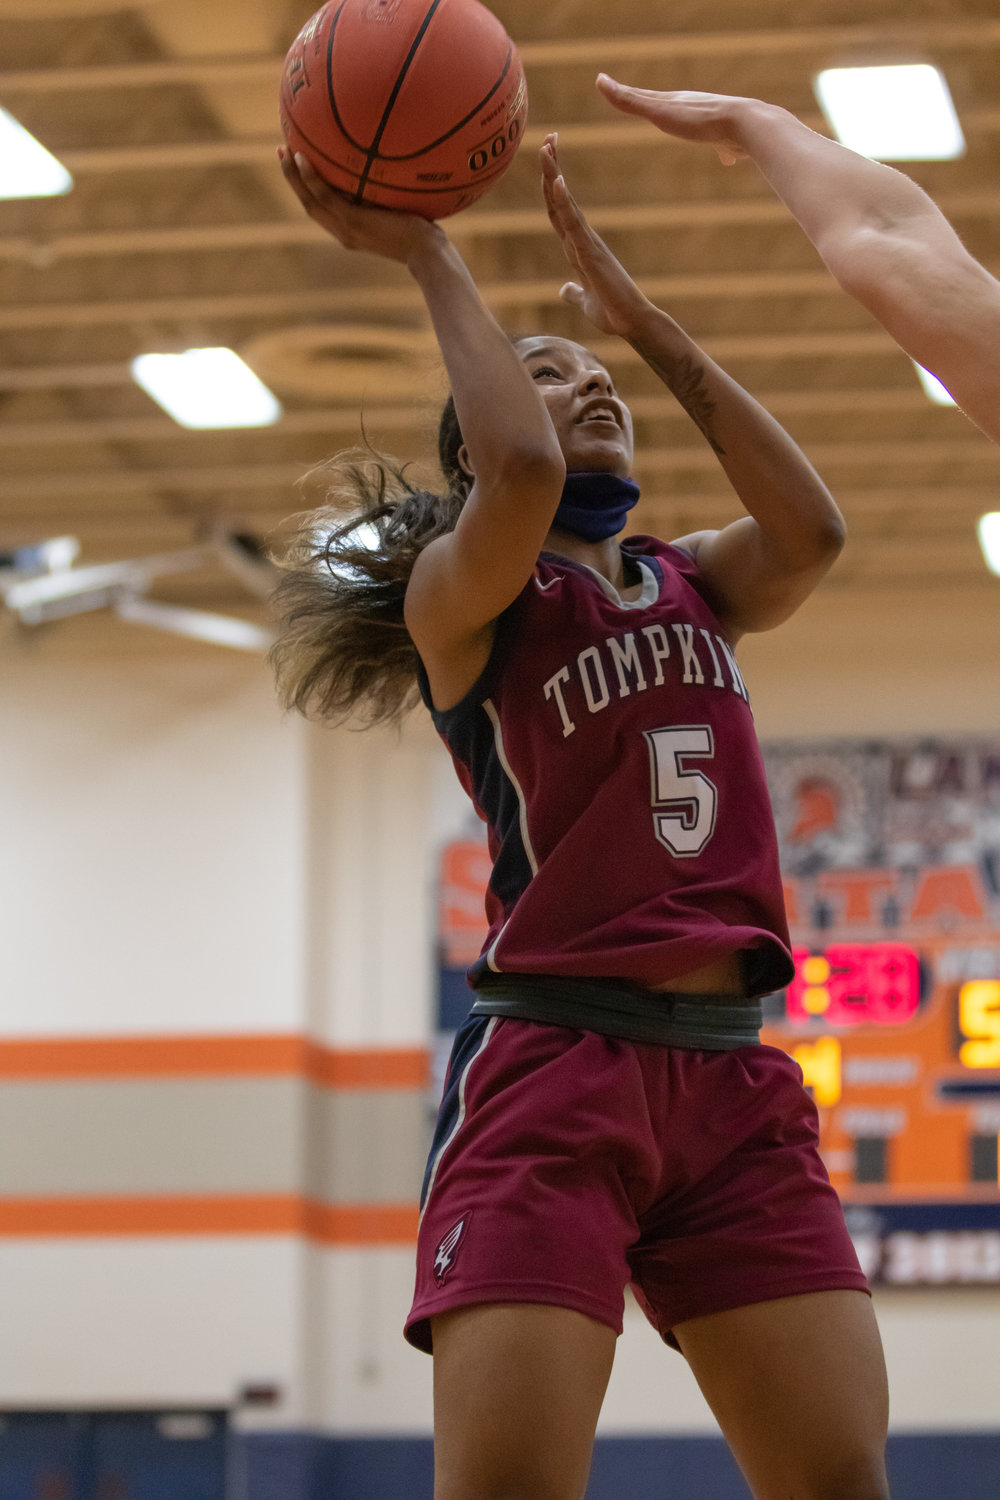 Tompkins senior guard Crystal Smith goes up for a shot during a game against Seven Lakes on Tuesday, Dec. 29, at Seven Lakes High.